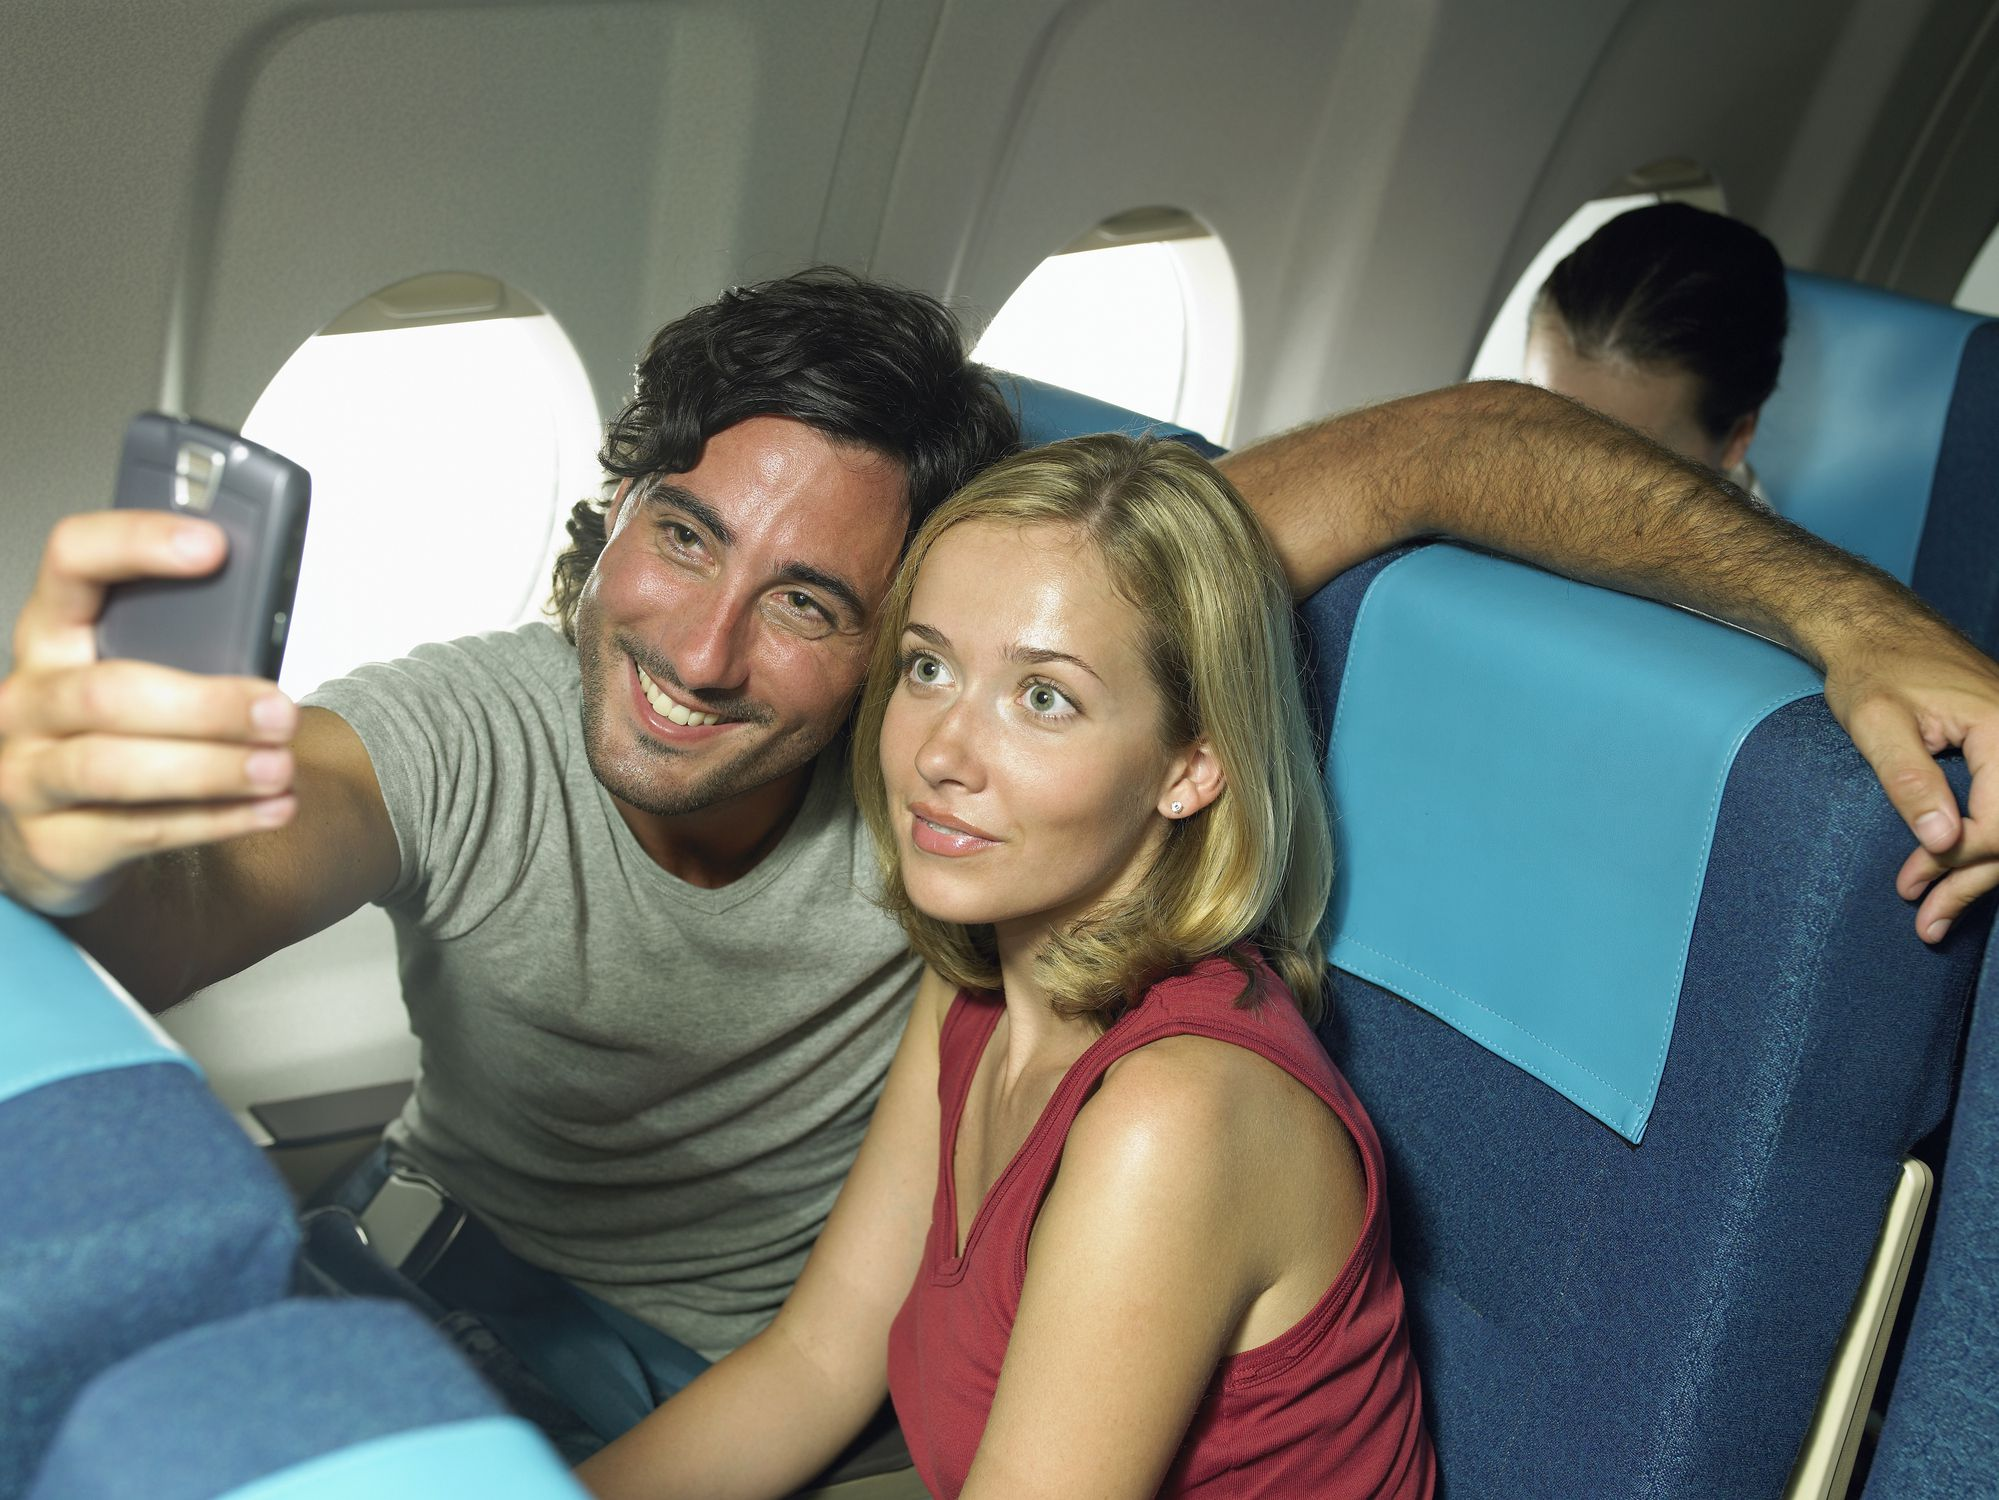 Choosing Your Airline Seats Together